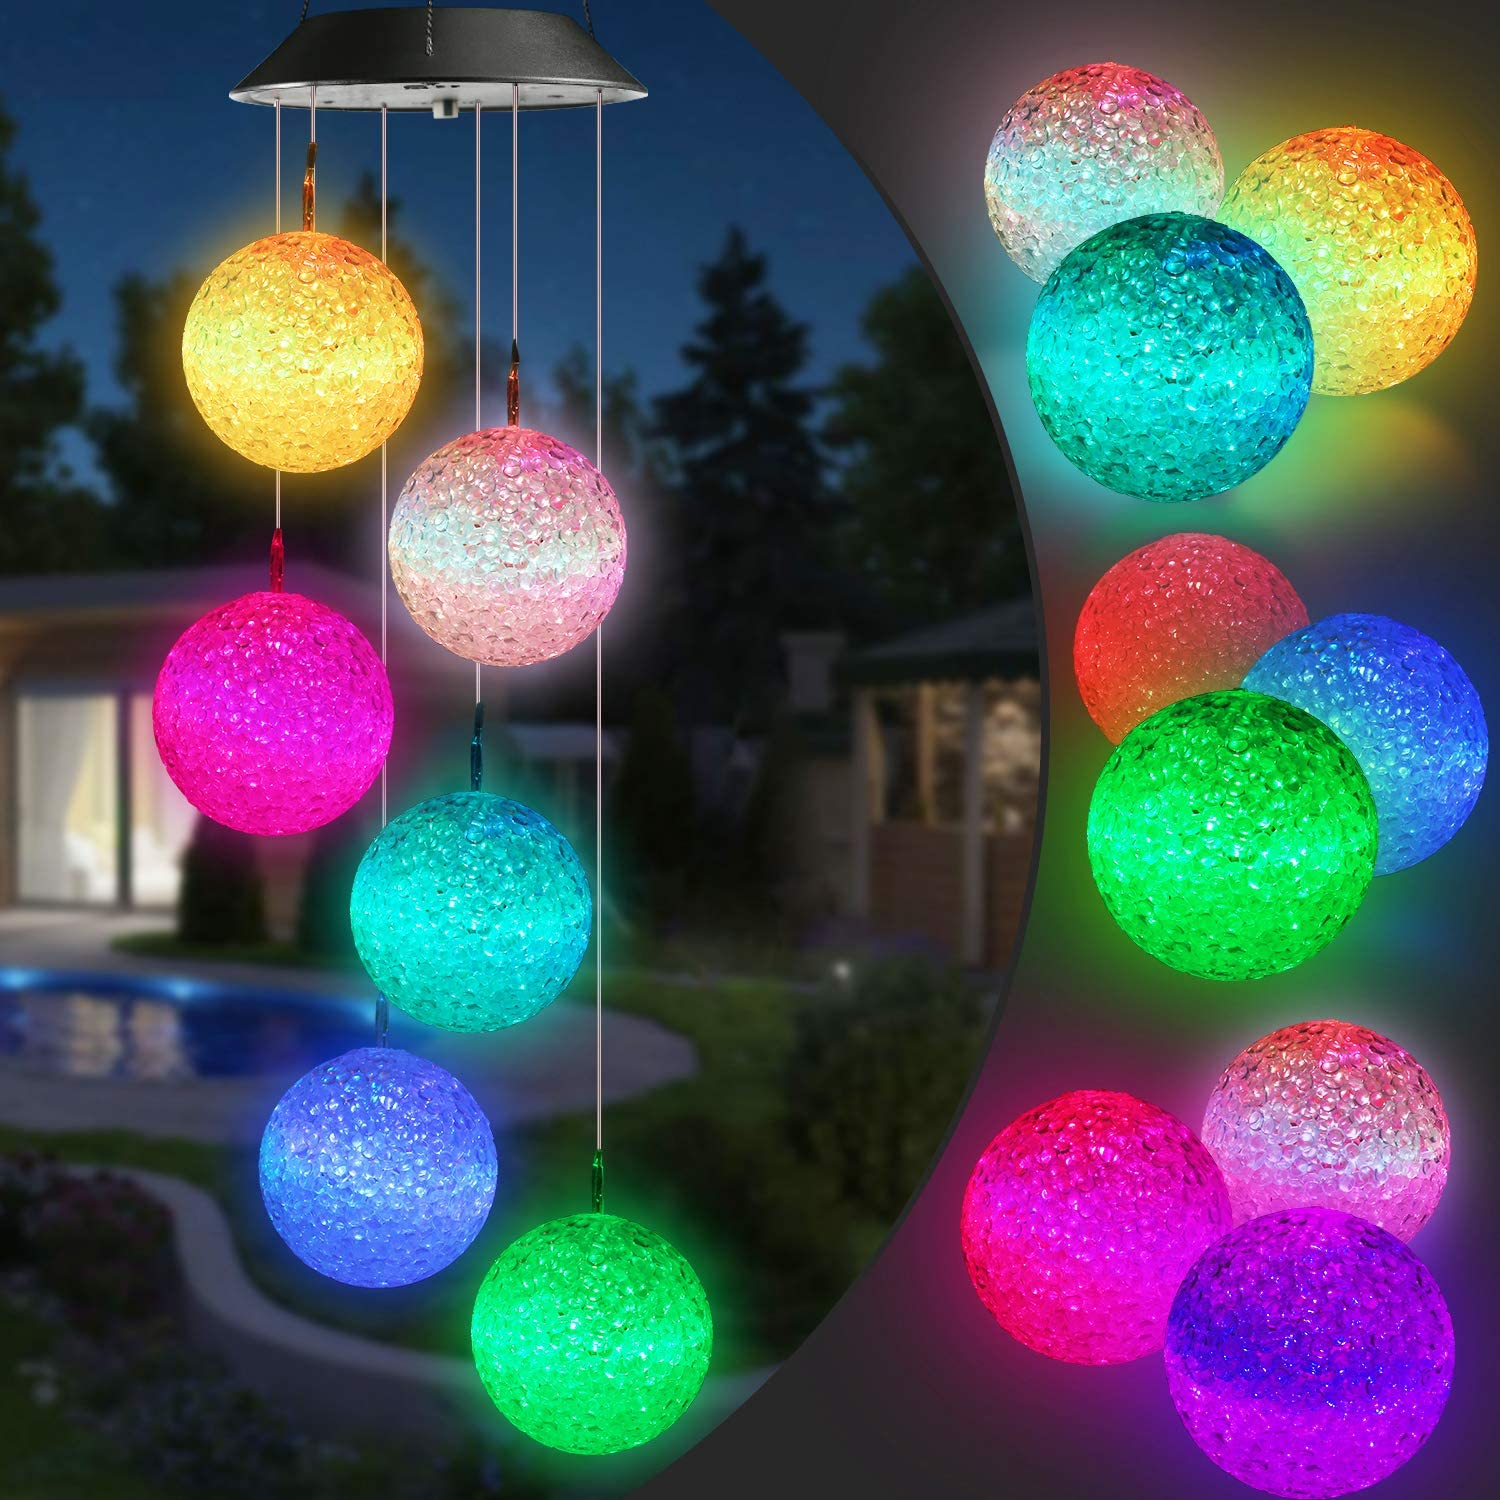 for Home Party Porch Deck Garden Decor Colored LED Solar Wind Chime Outdoor Waterproof Solar Panel LED Dragonfly Wind Chimes Home Garden Decor Light Lamp